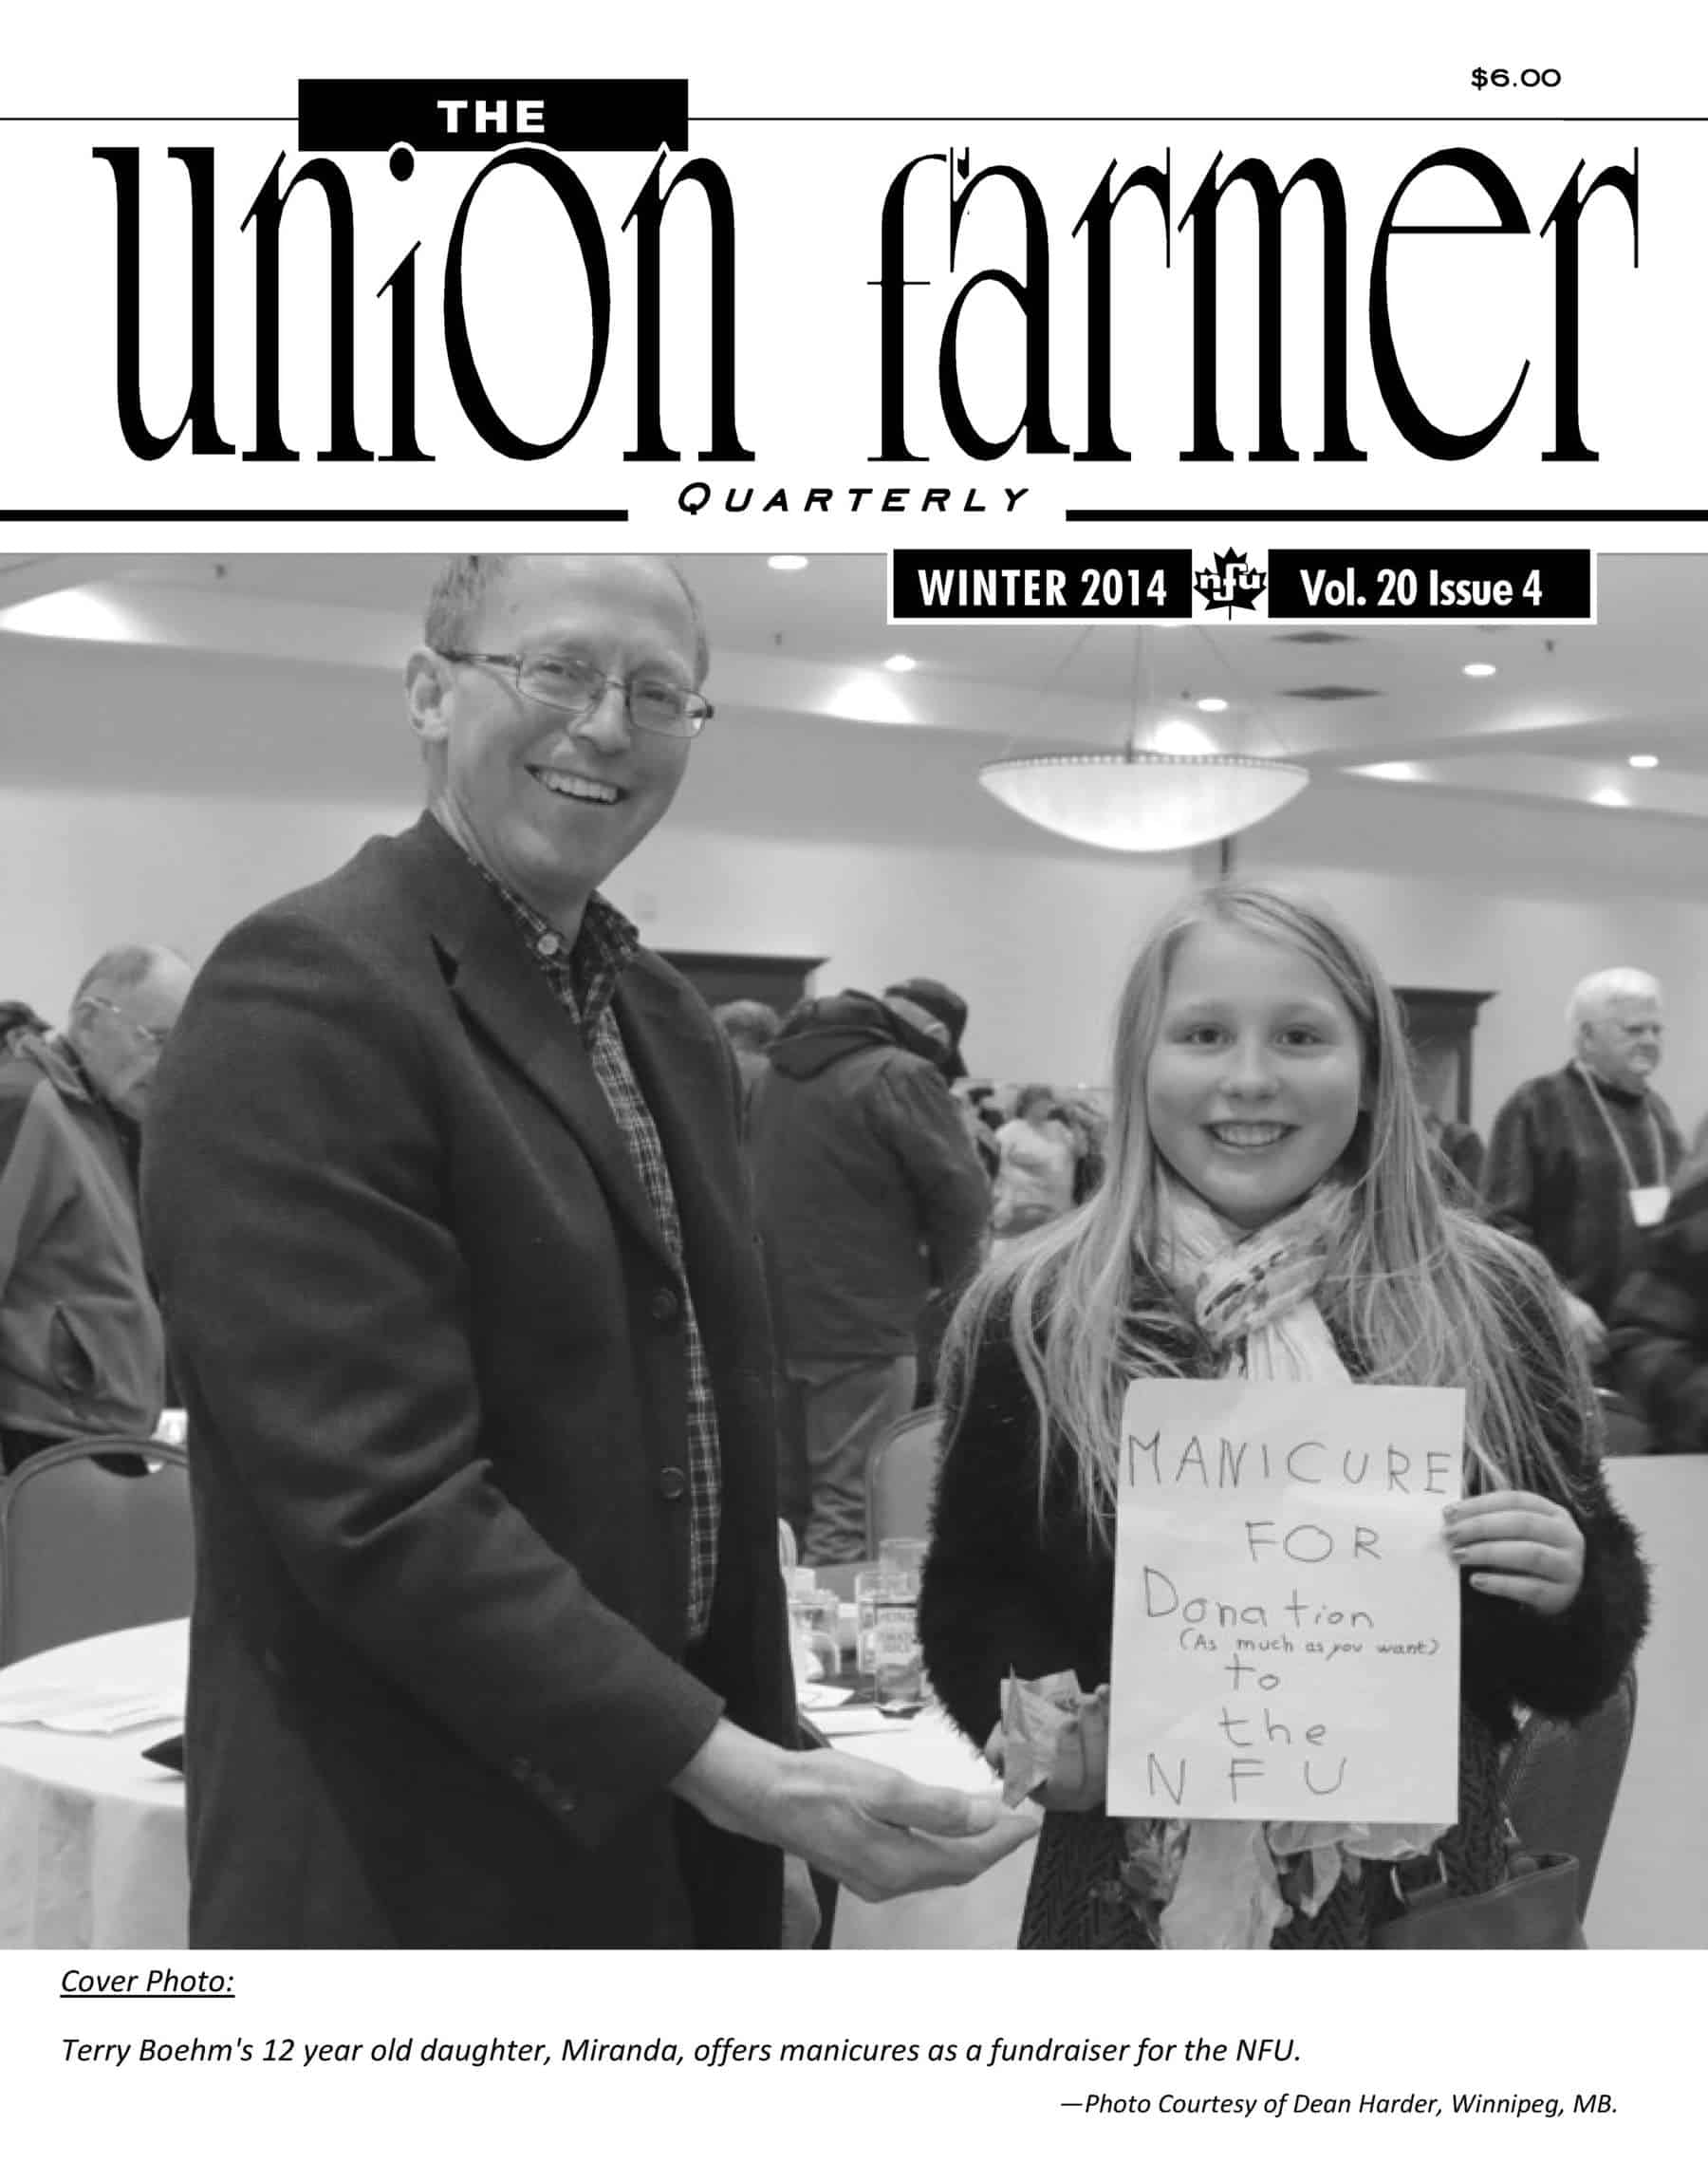 Union Farmer Quarterly: Winter 2014